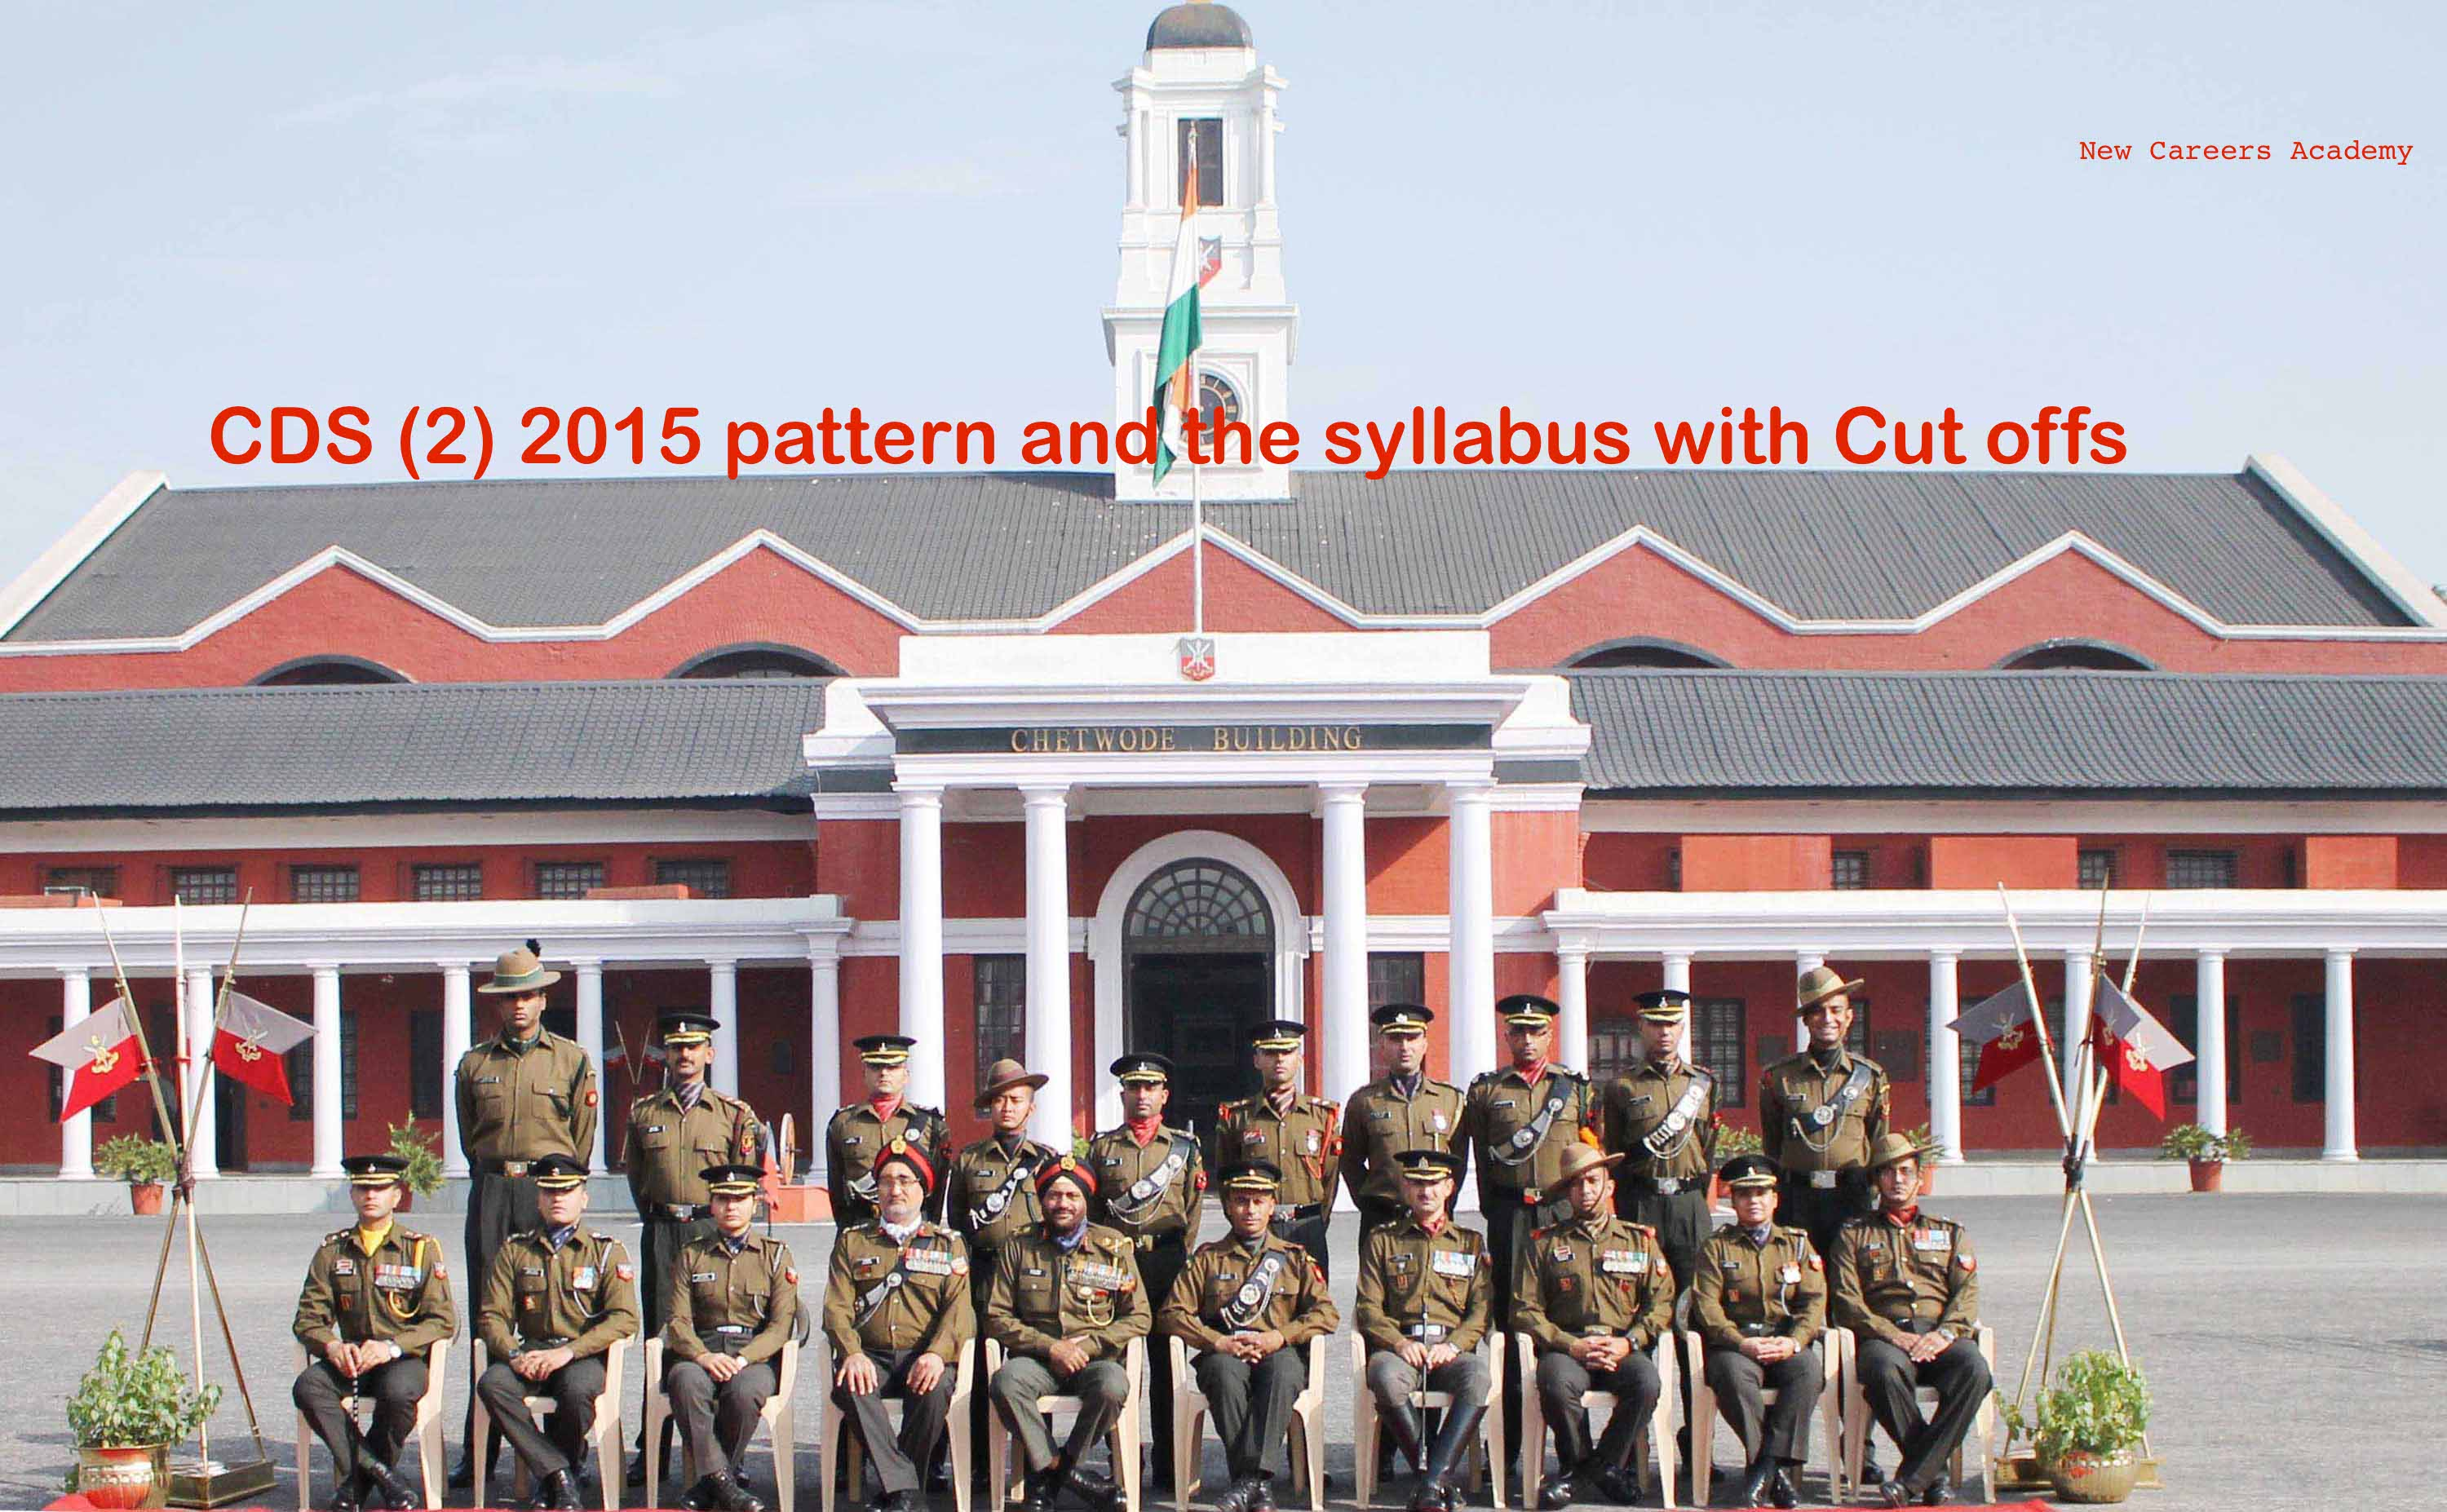 CDS (2) 2015 pattern and the syllabus with Cut offs